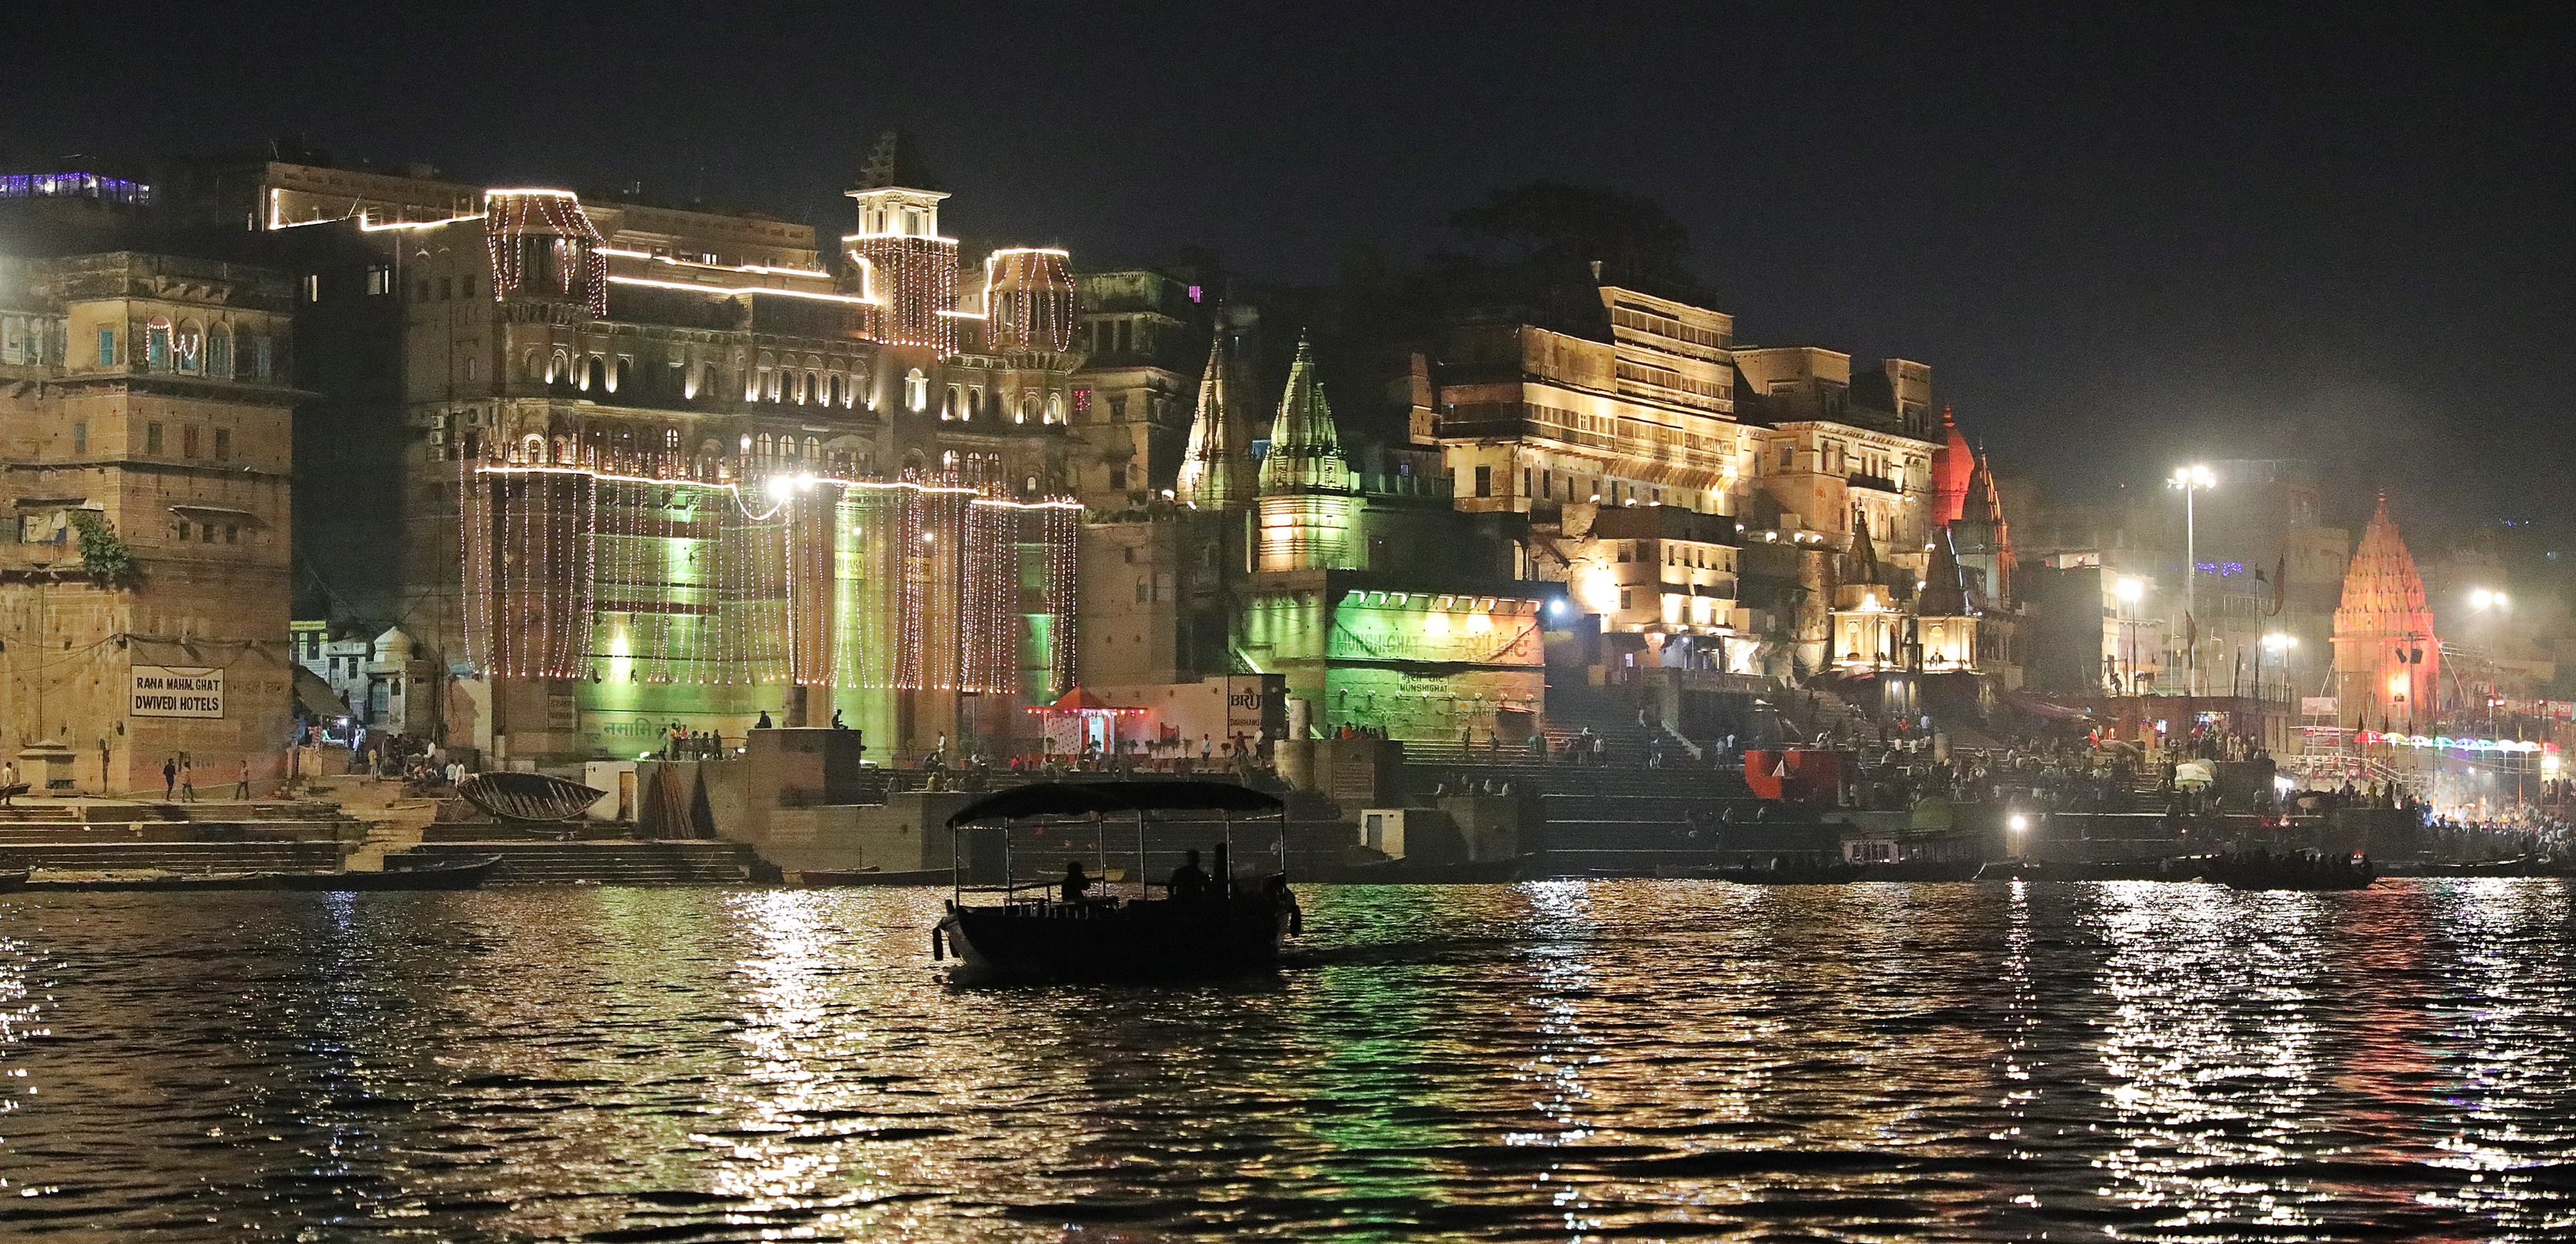 Varanasi at night with Dewali lights